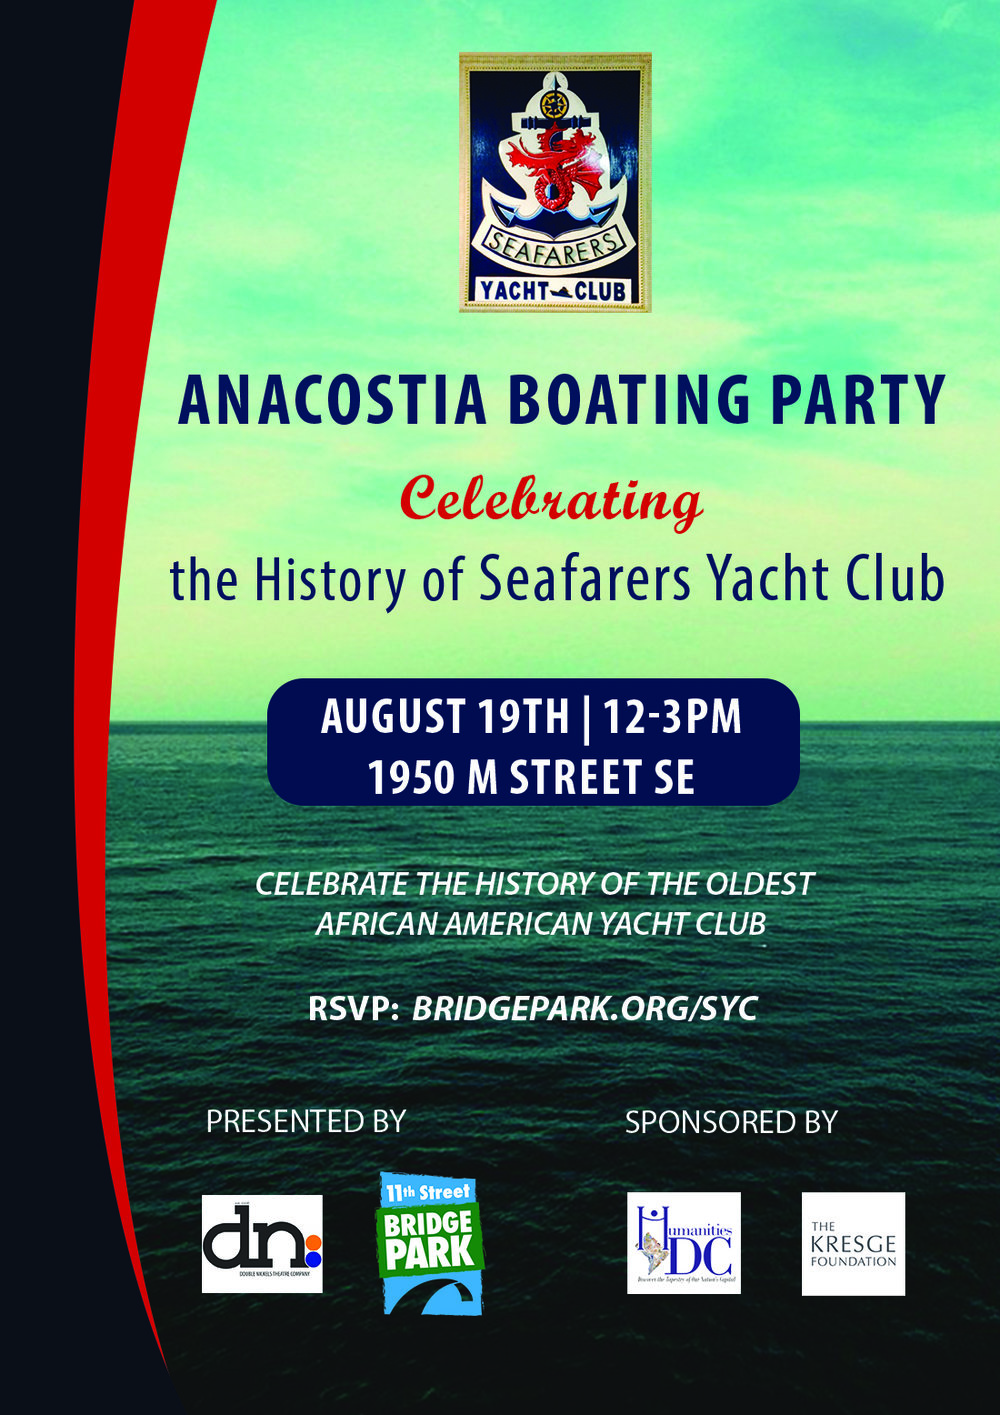 Seafarer_BOATing_PARTY (2).jpg